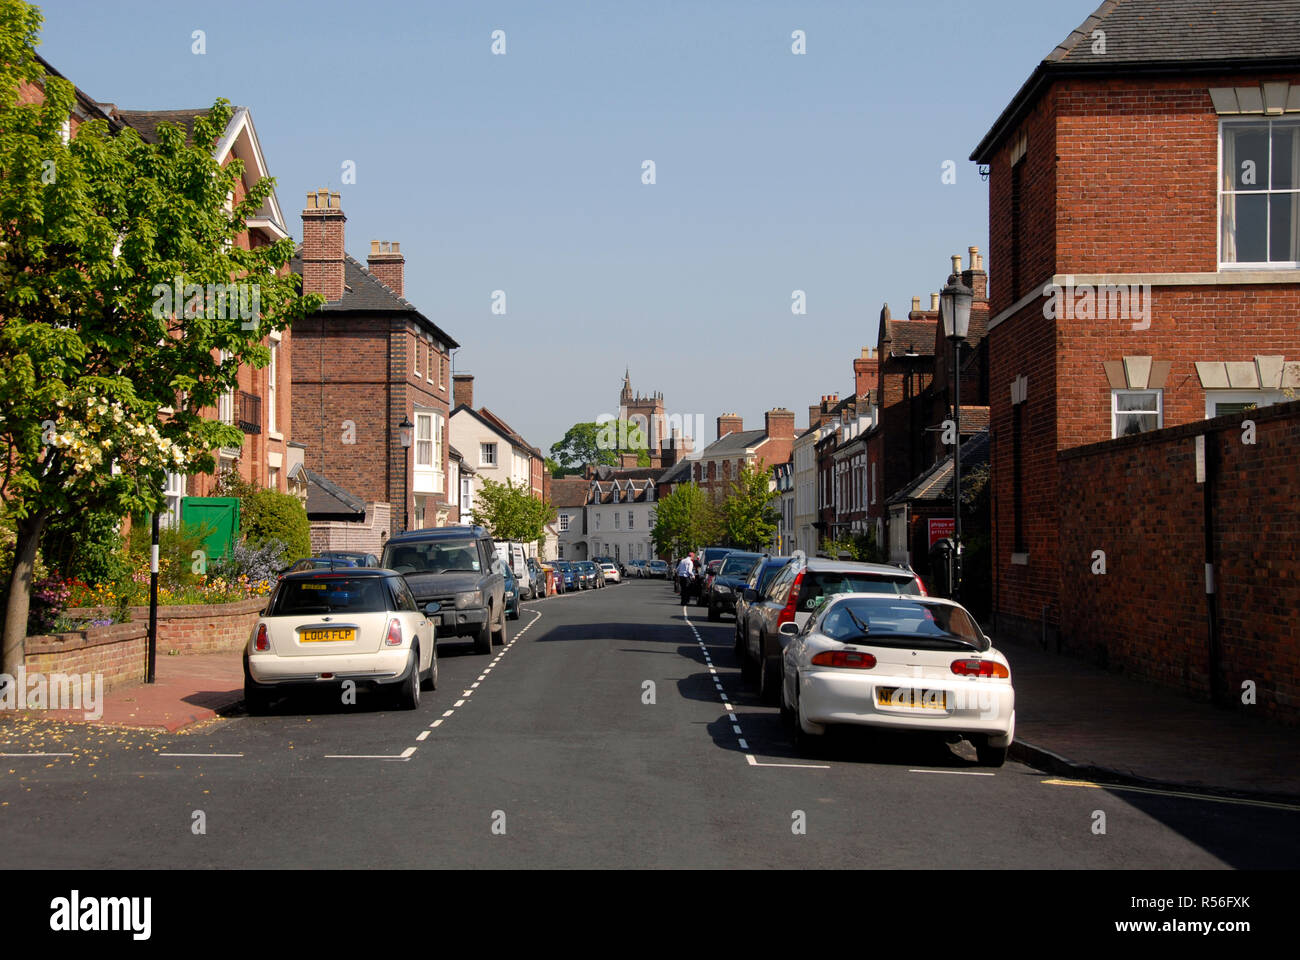 Quiet street in Bridgnorth, Shropshire, England, with vehicles parked both sides. - Stock Image